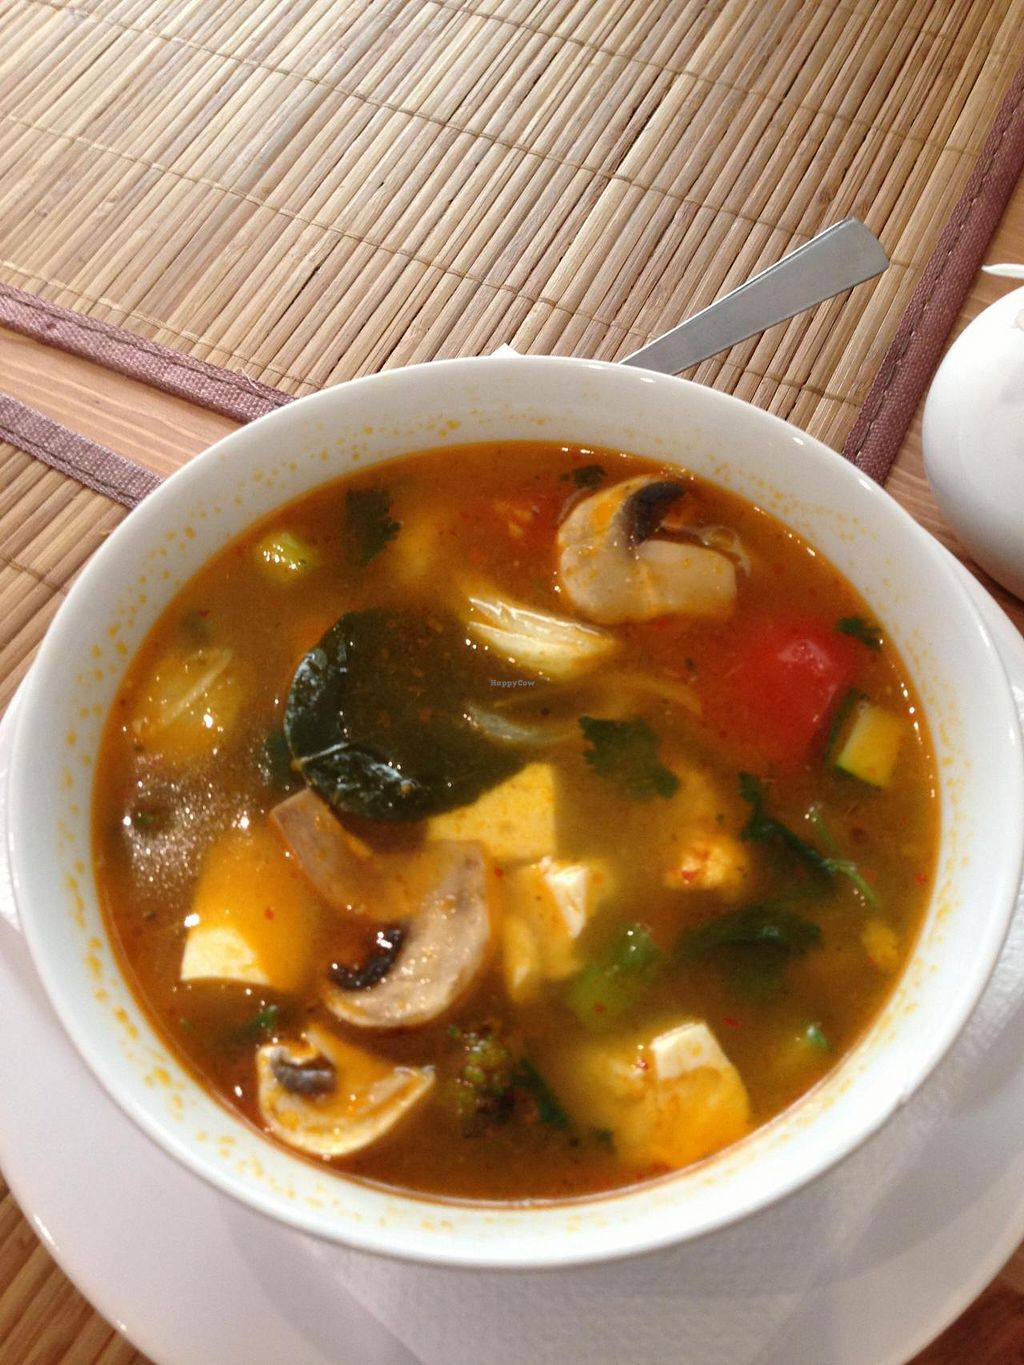 "Photo of ThaiWok  by <a href=""/members/profile/Vegeiko"">Vegeiko</a> <br/>Vegetarian Tom Yum Soup <br/> July 3, 2014  - <a href='/contact/abuse/image/34470/73135'>Report</a>"